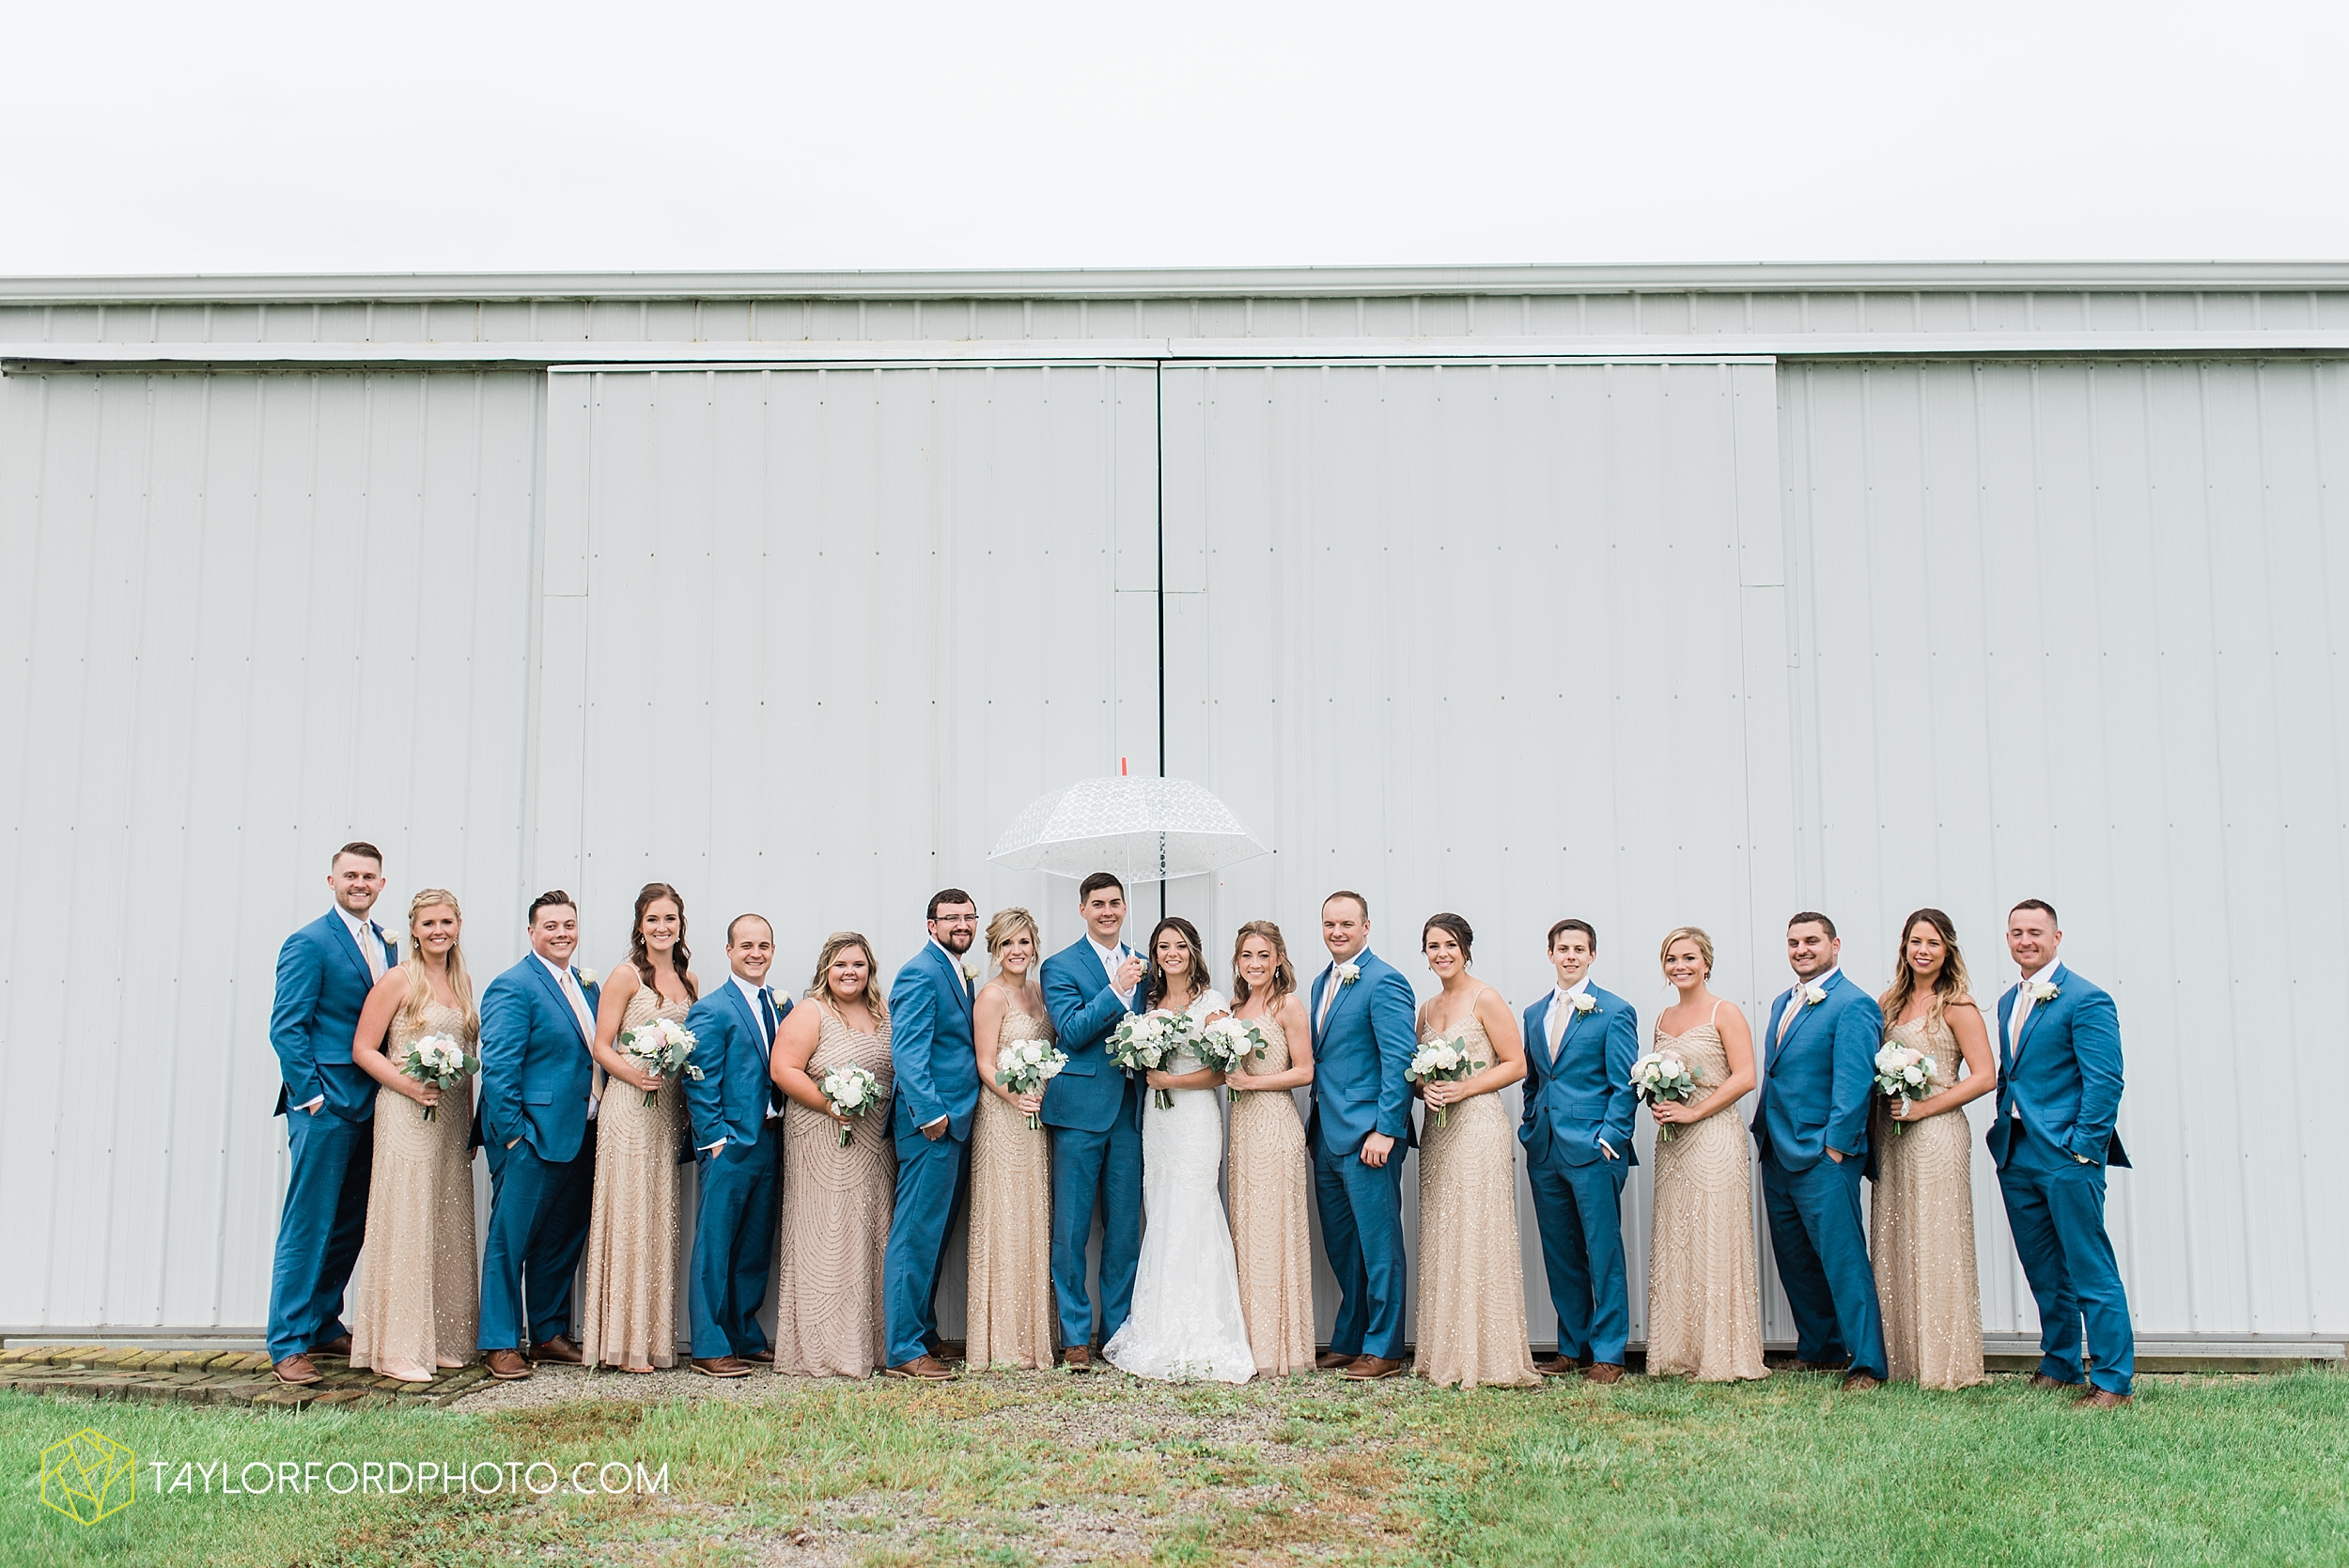 kacee-haden-sholl-second-story-saint-marys-knights-of-columbus-defiance-ohio-wedding-photographer-taylor-ford-photography_0162.jpg